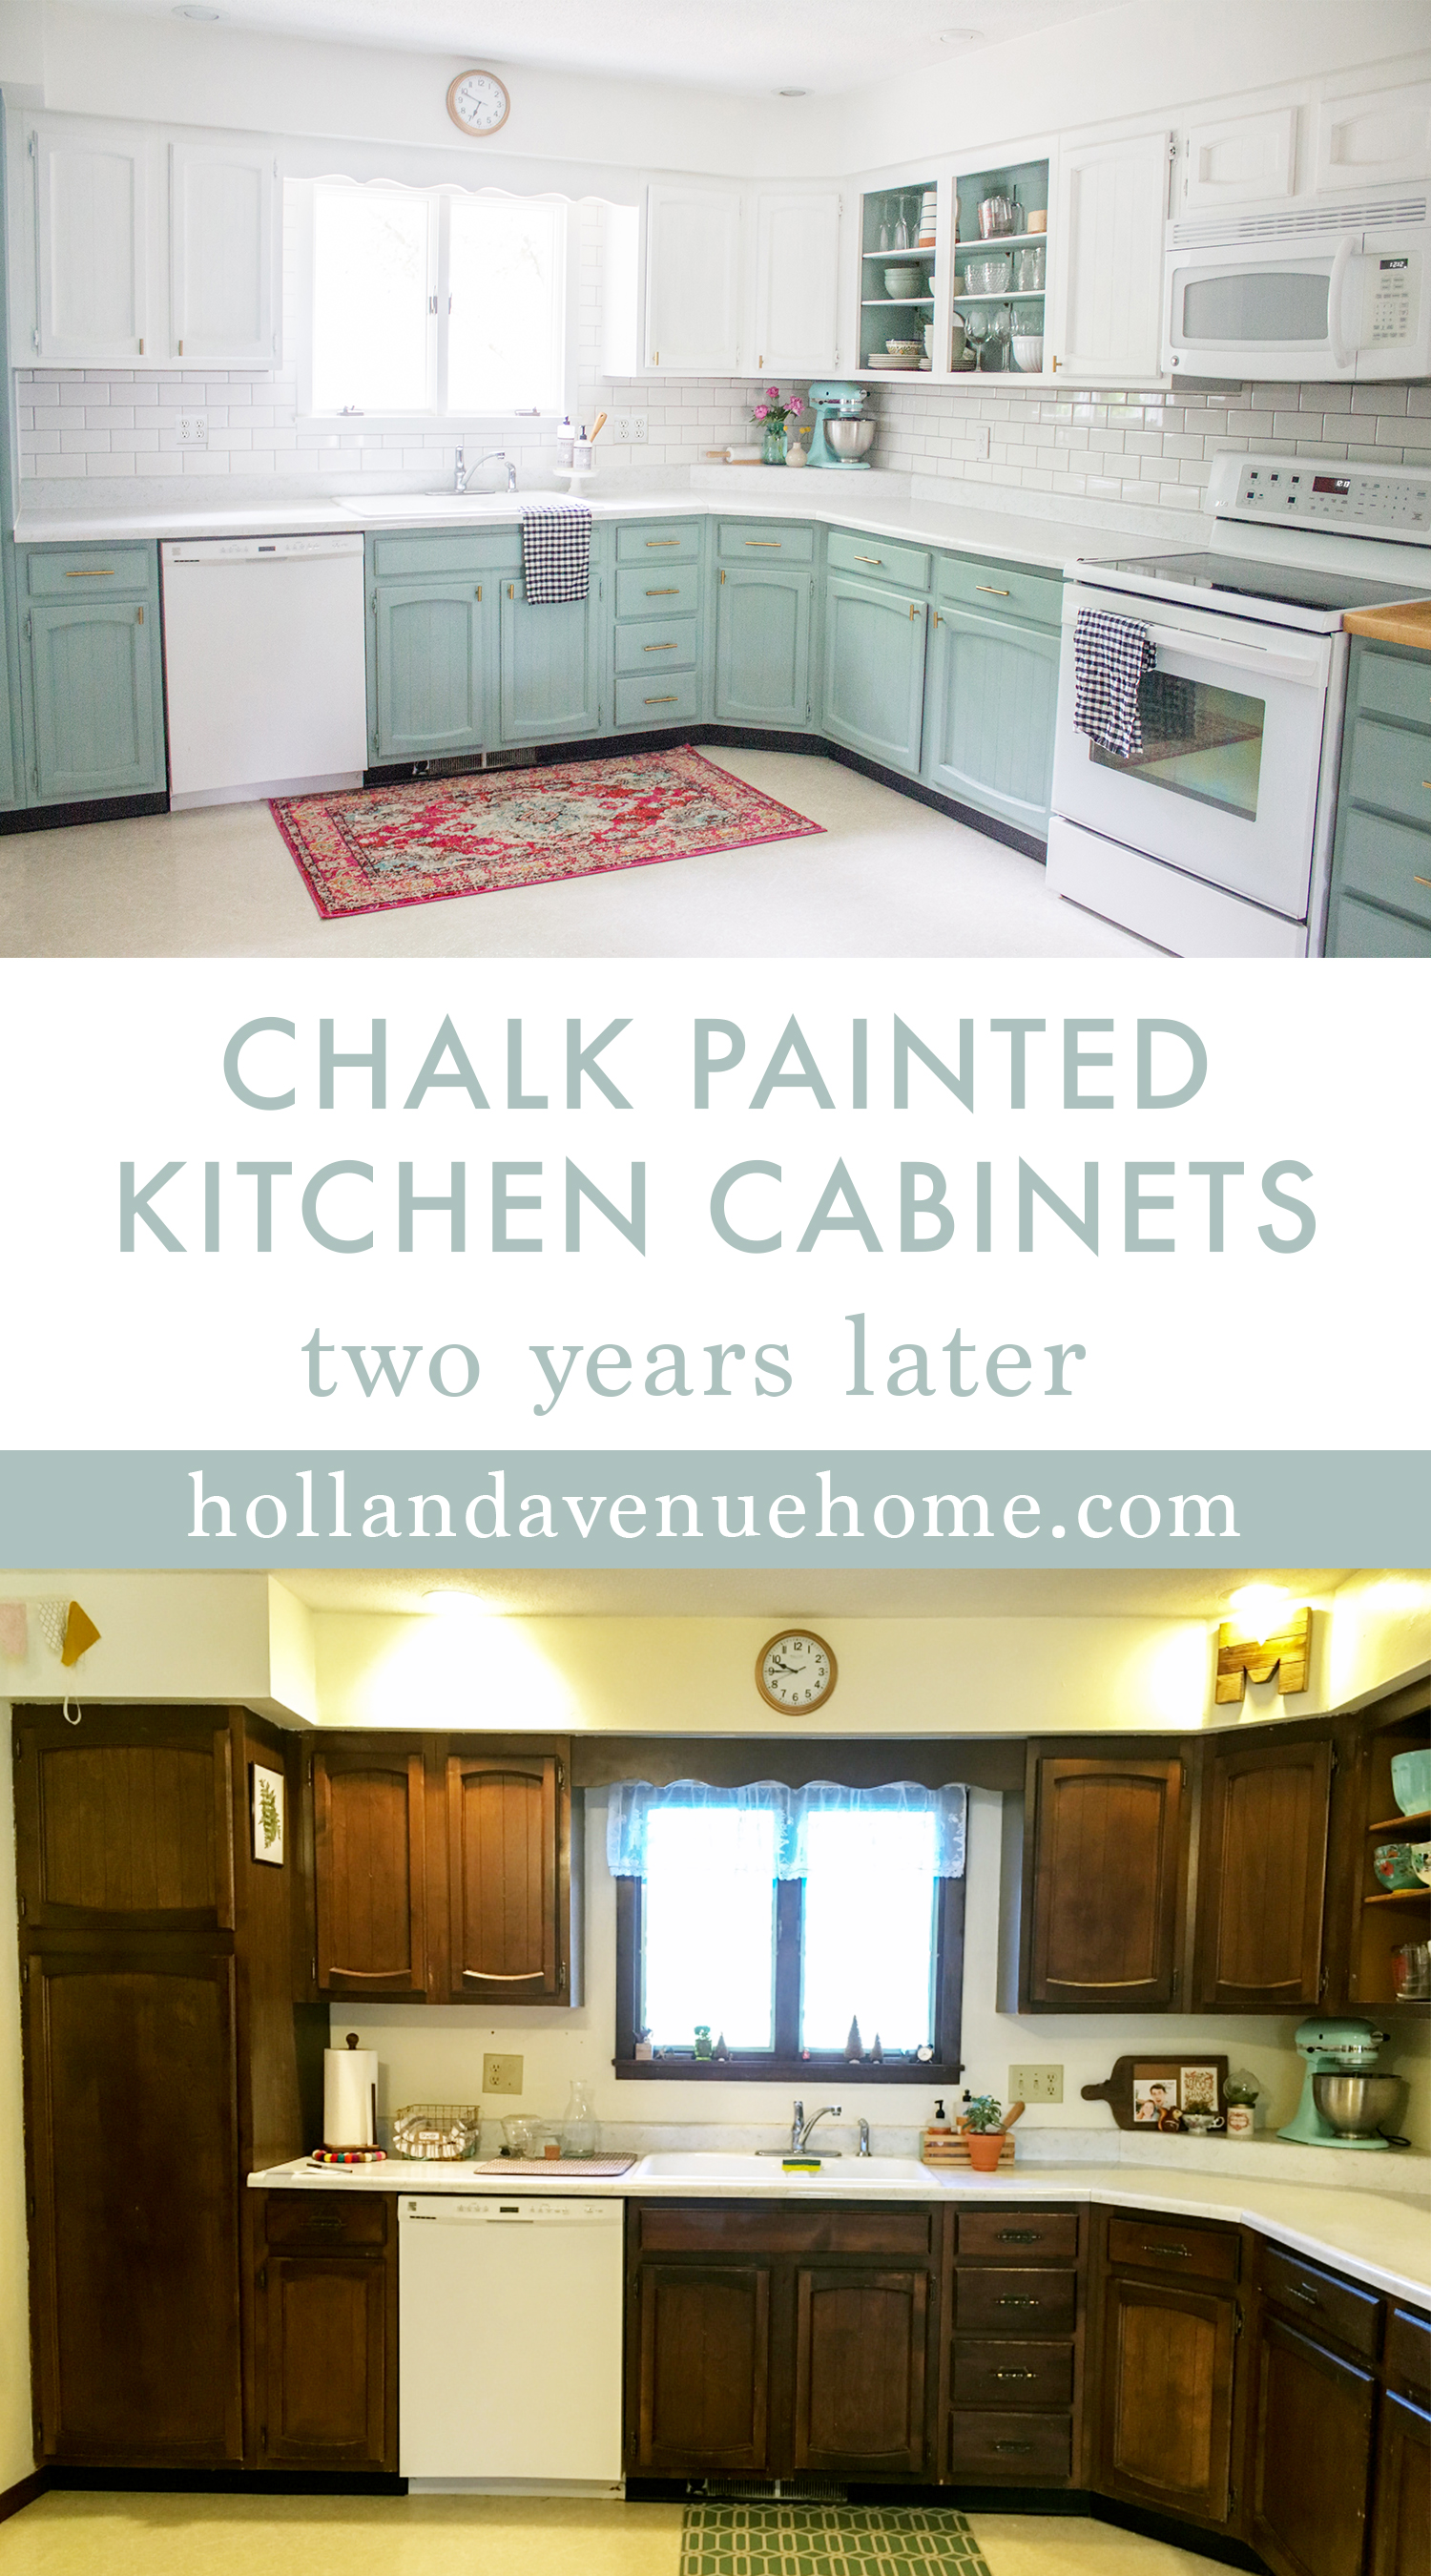 & Chalk Painted Kitchen Cabinets Two Years Later